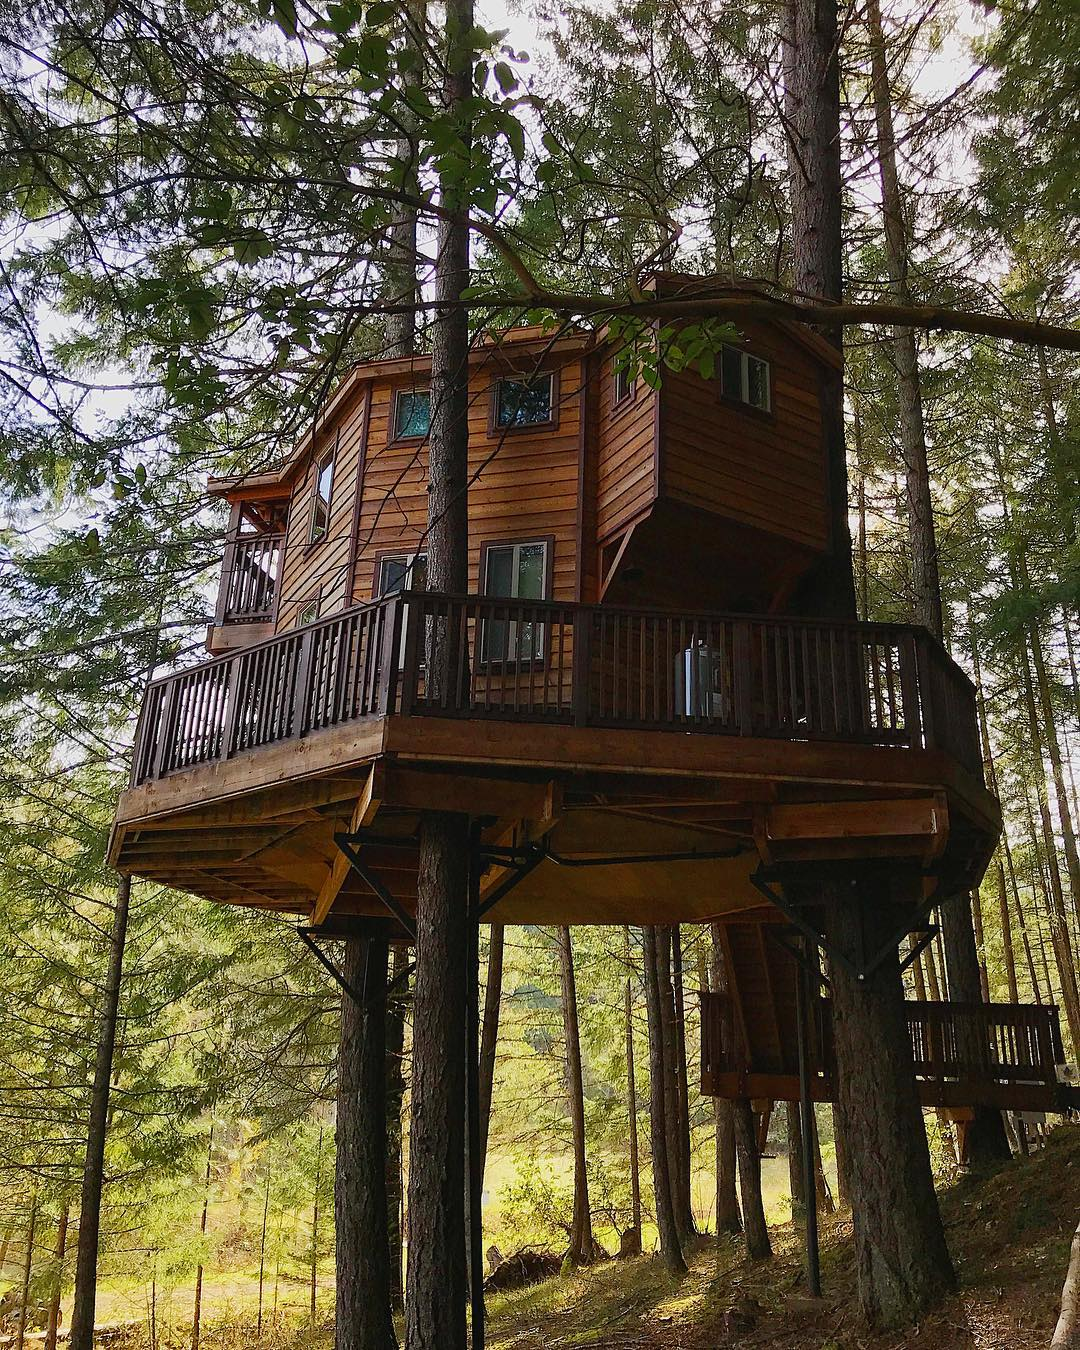 Cabin high in the trees